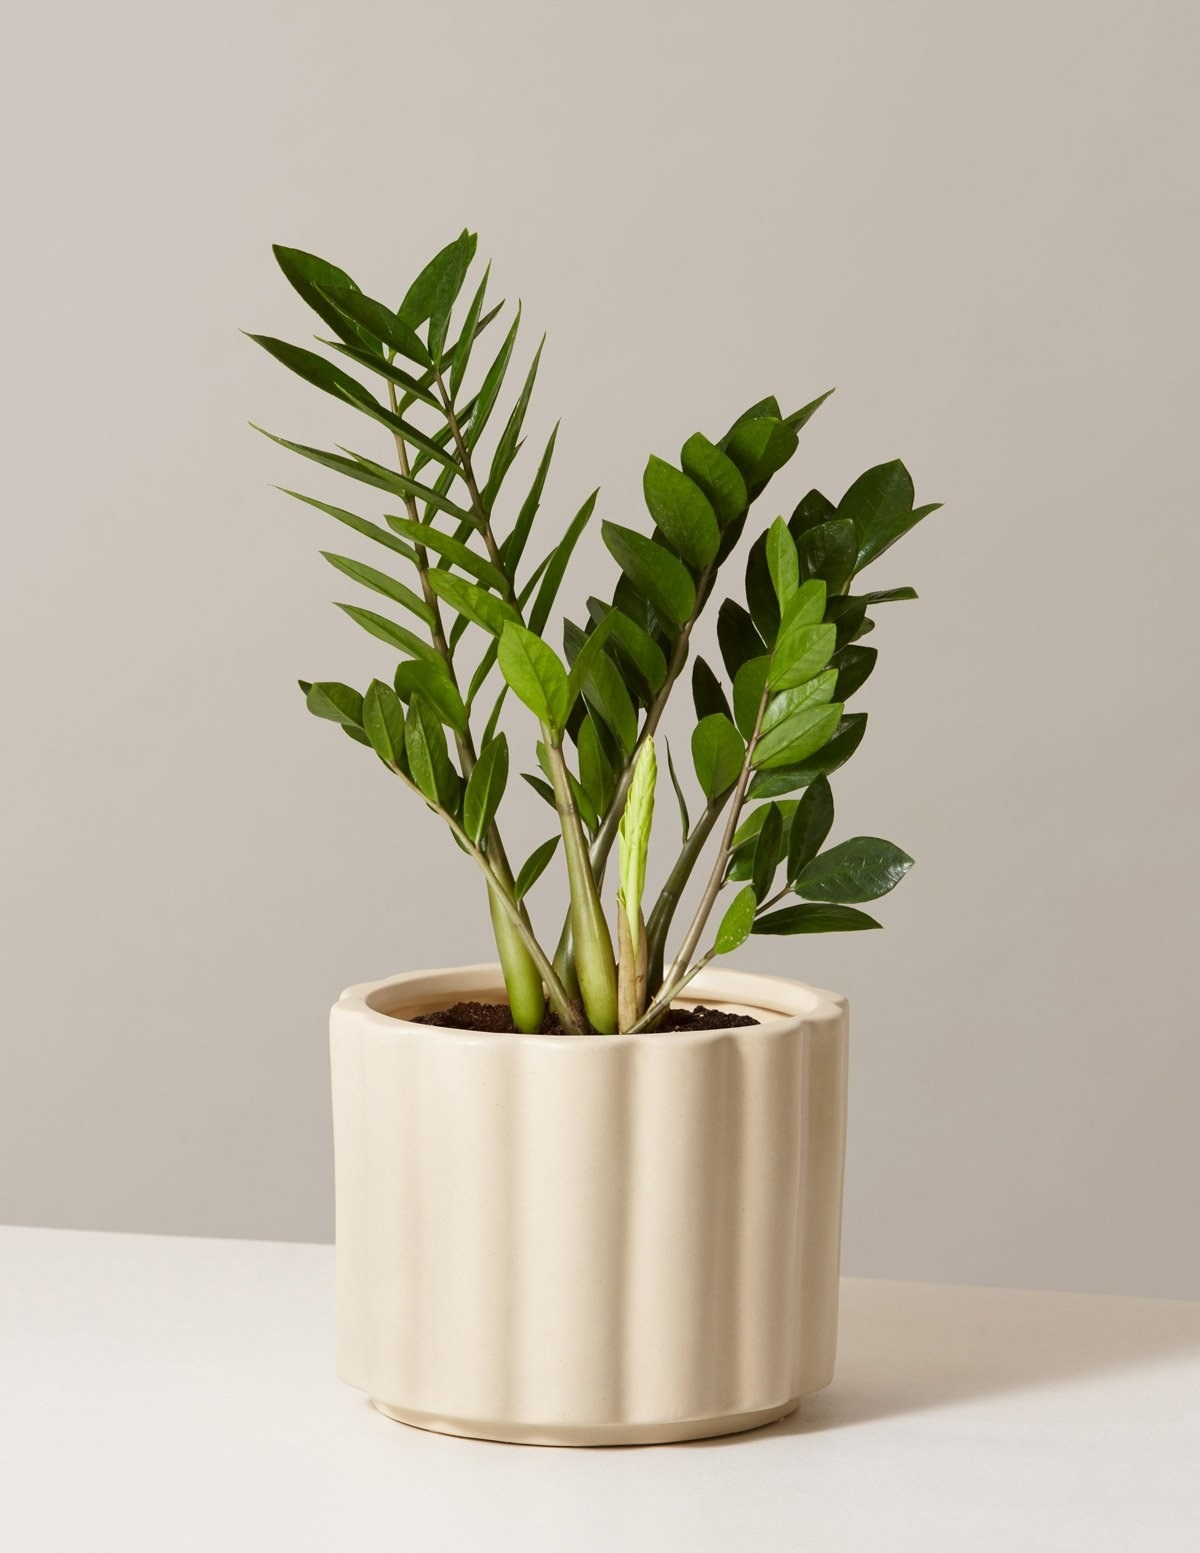 A ZZ plant in a pot